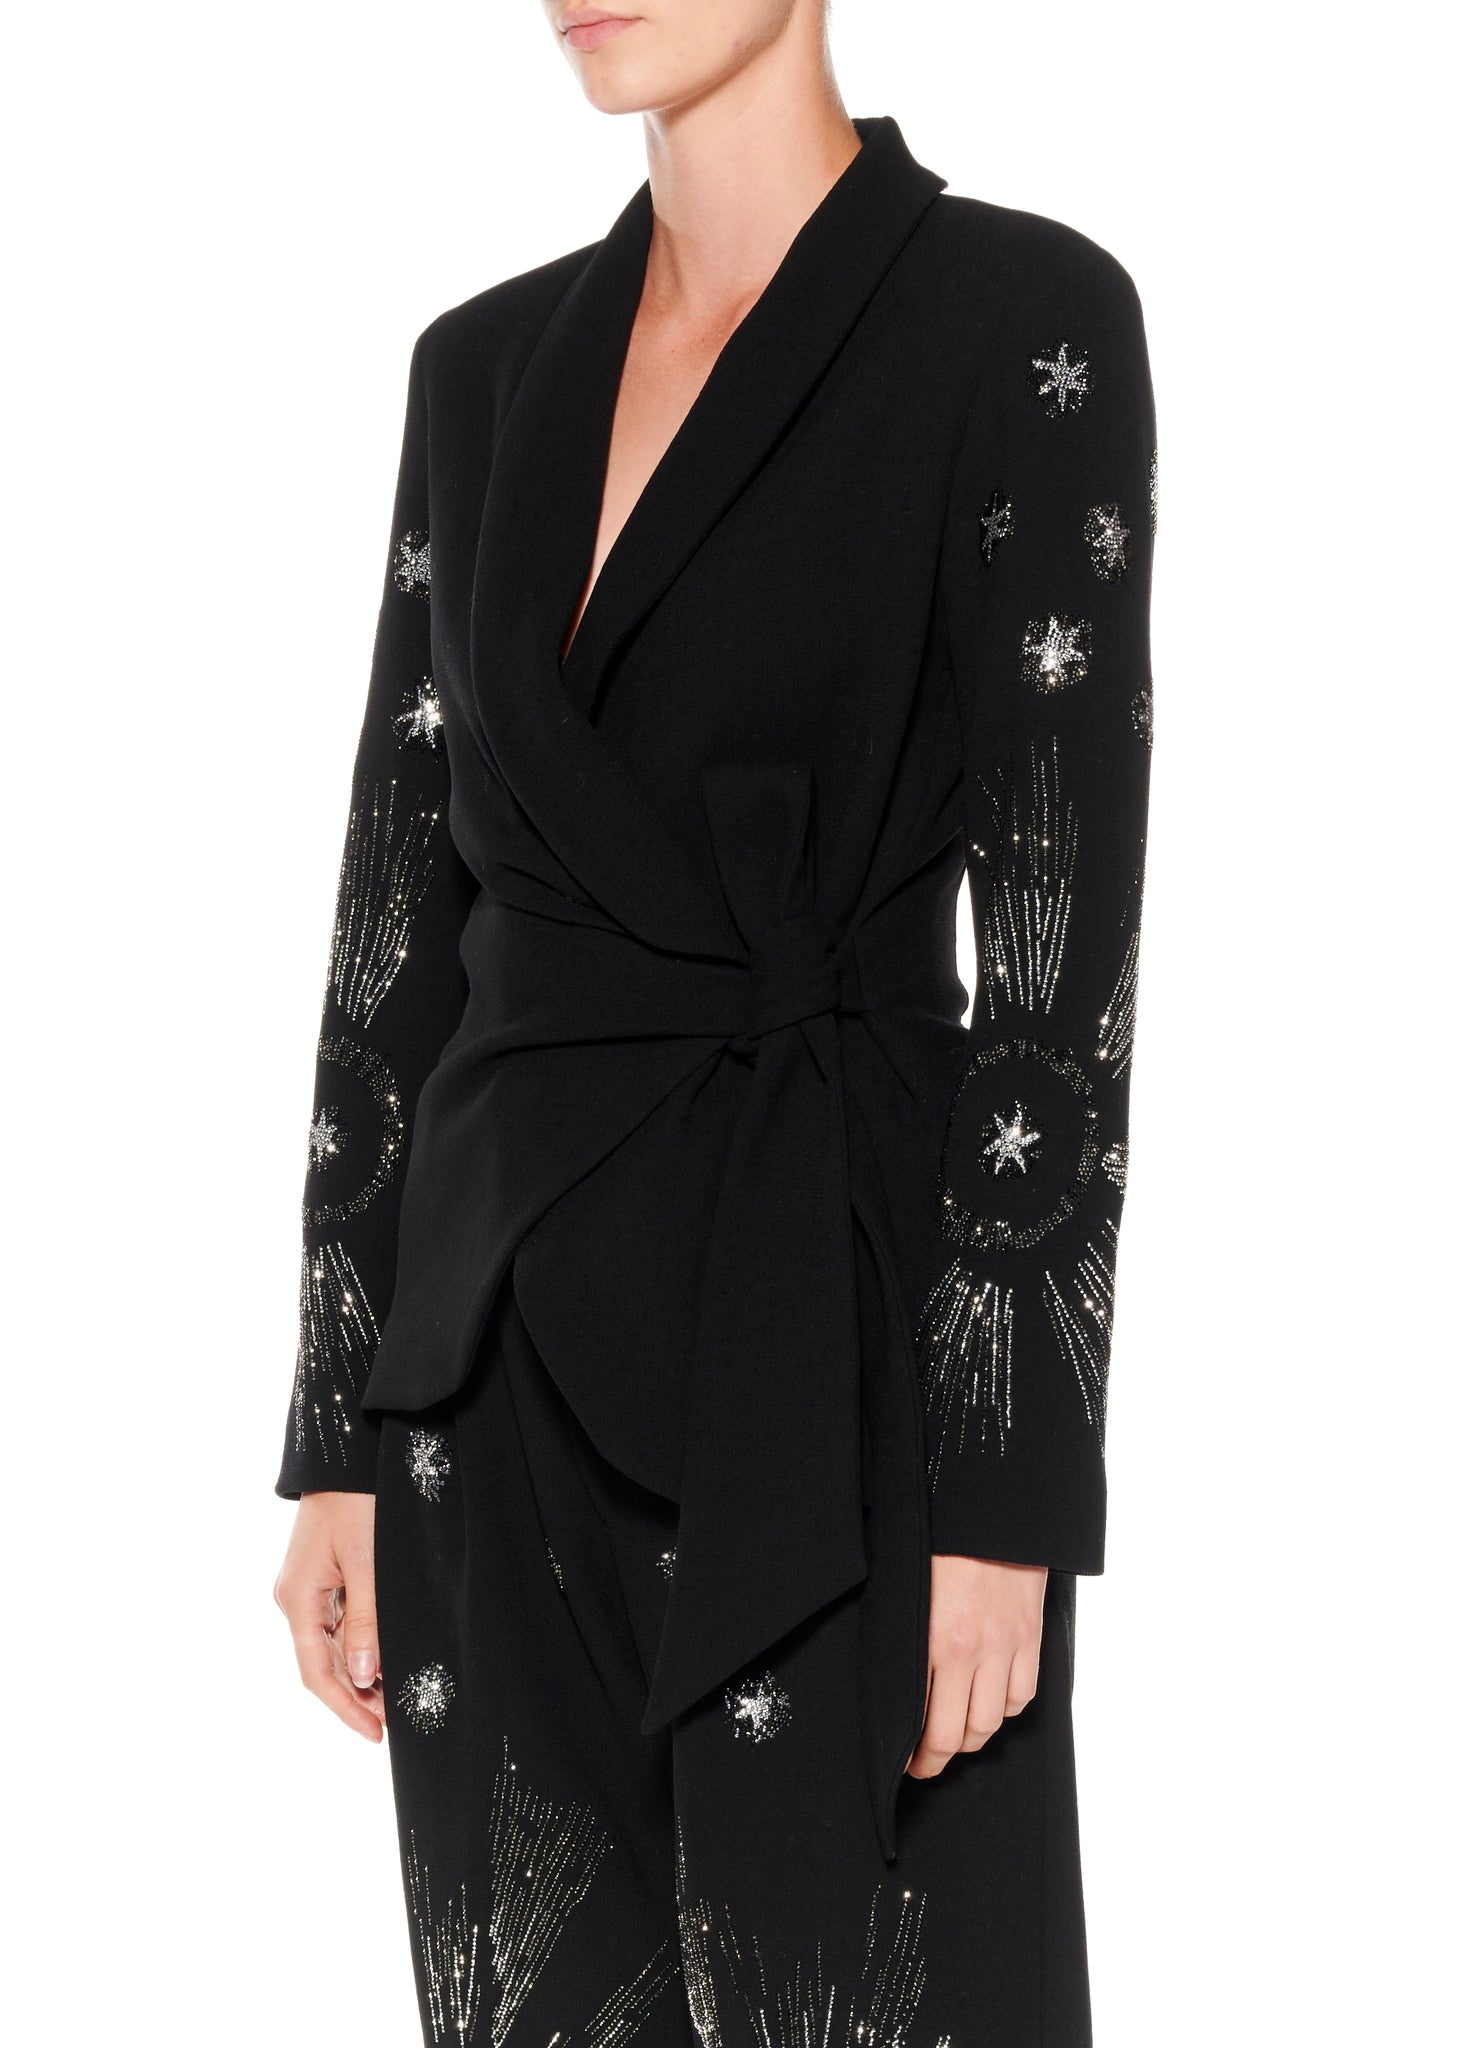 """STARS"" WRAP JACKET - Women's Jackets & Coats - Libertine"